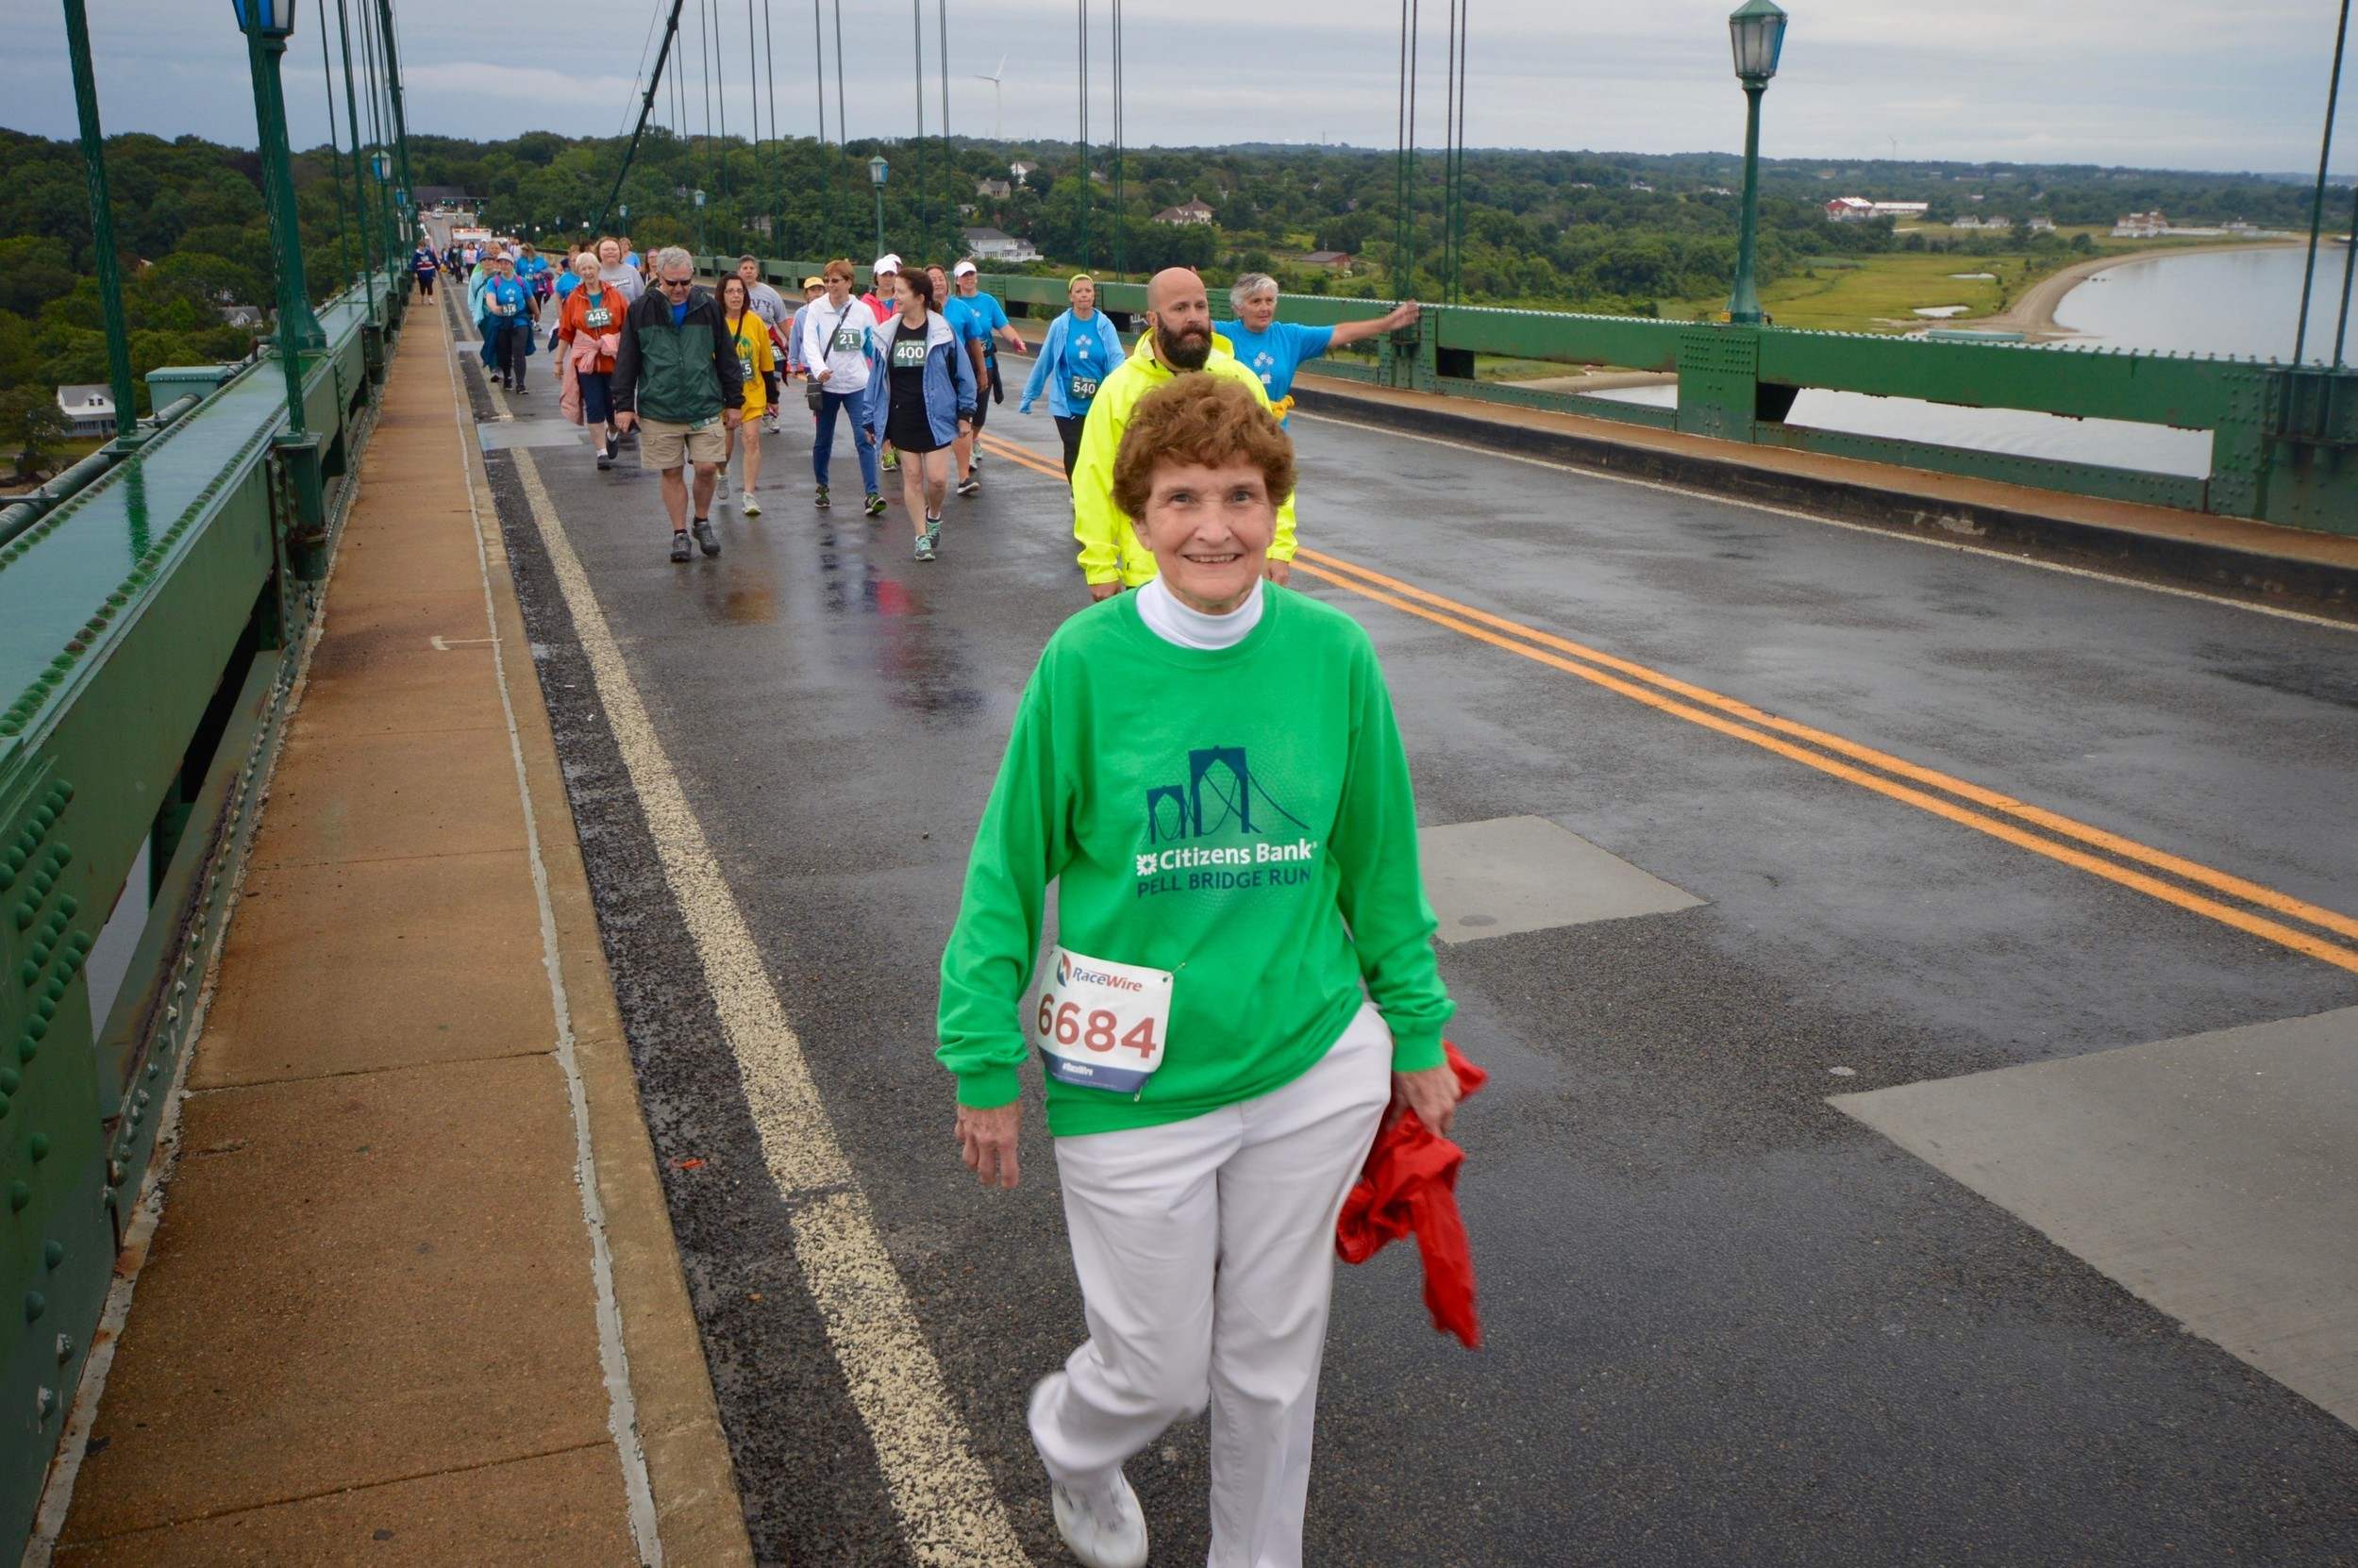 Having just left the Portsmouth School Department after 42 years, Diana White spent her first day of retirement Saturday morning on top of the Mt. Hope Bridge.